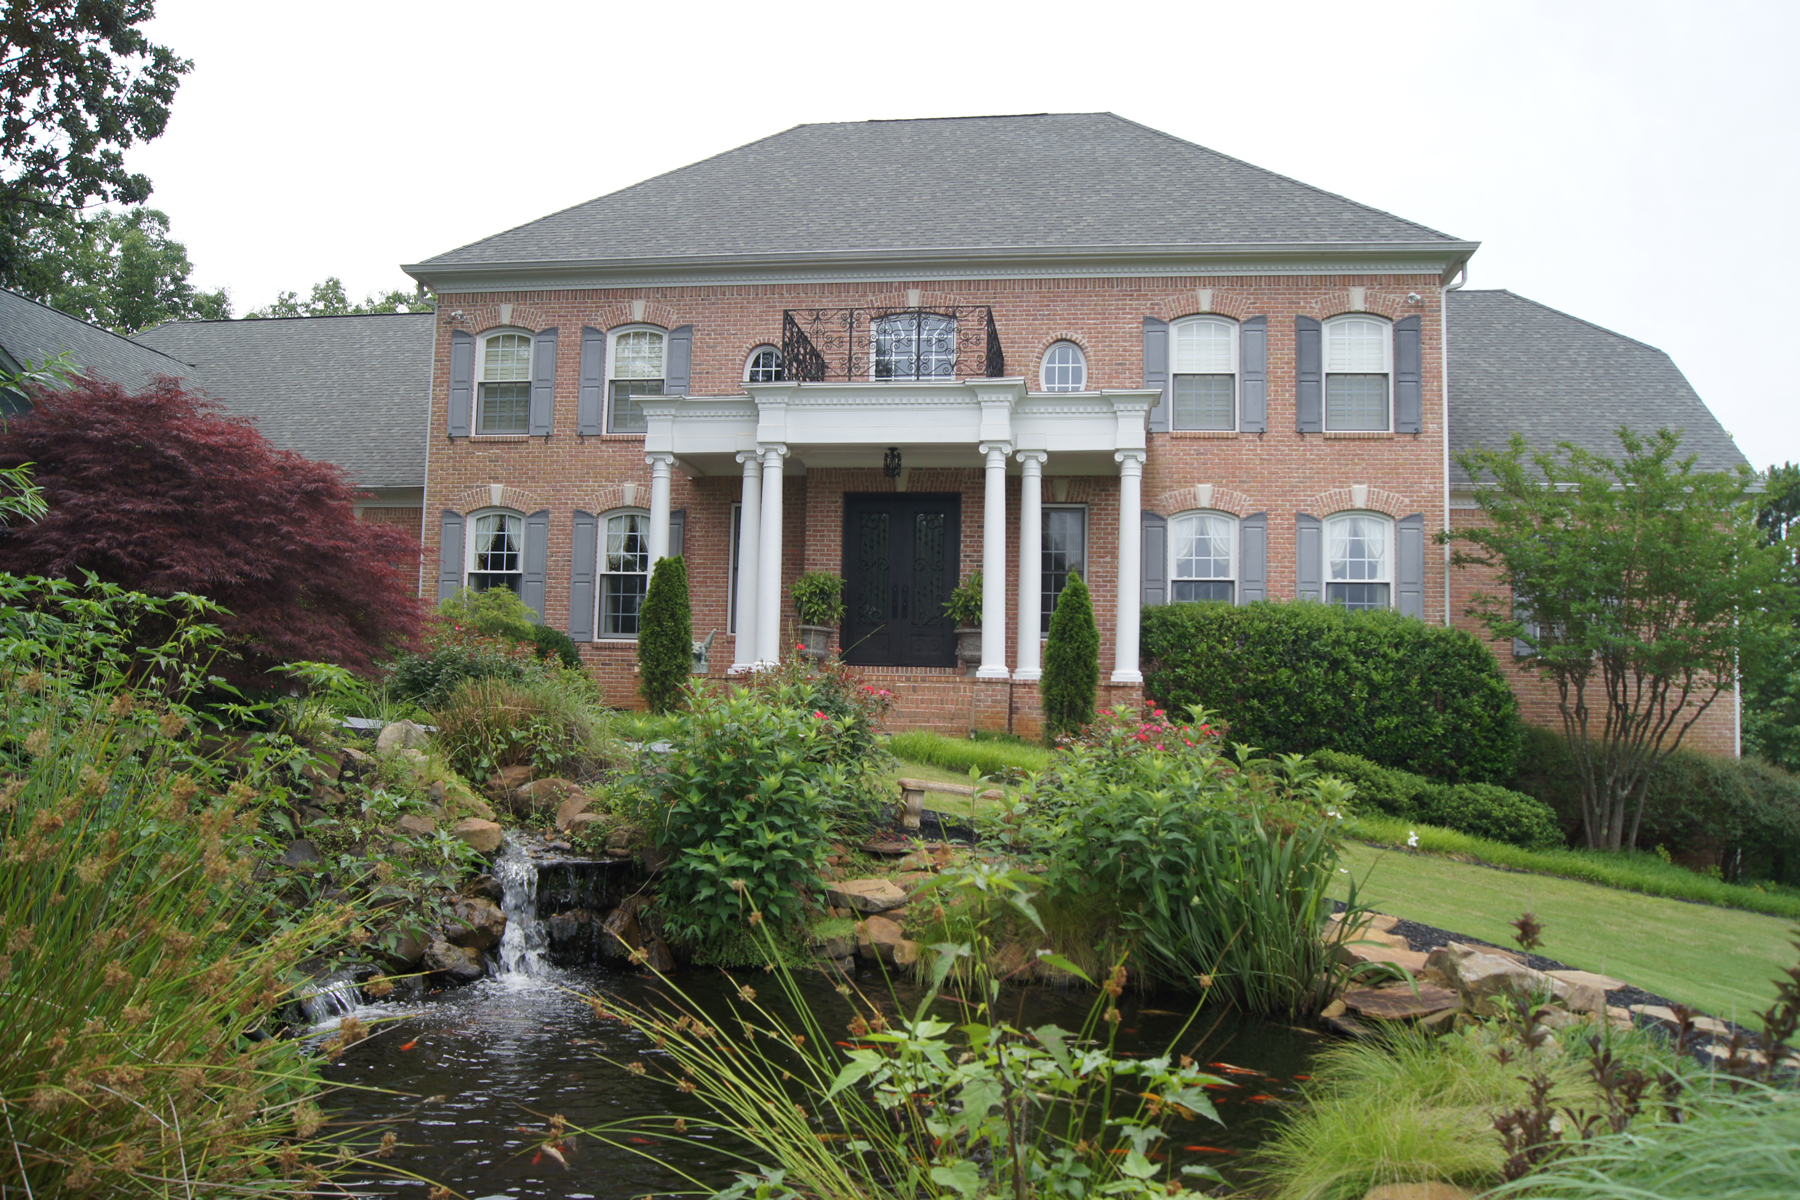 Single Family Home for Sale at Private Gated Community 28 Hawks Branch Lane White, Georgia, 30184 United States